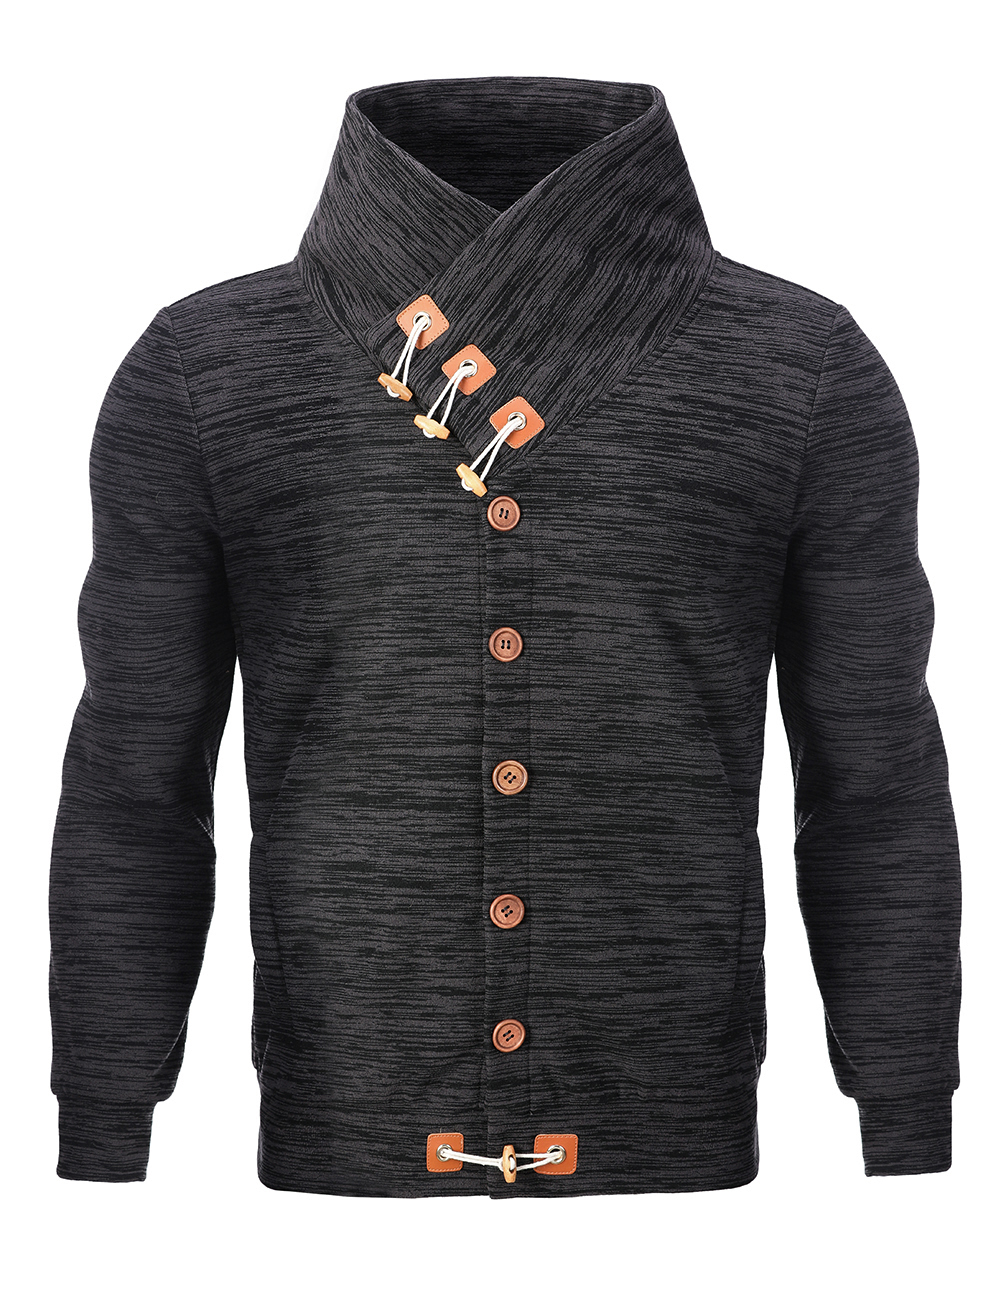 Necessaries Design Trendy Fleece Original Excellent Style Newest Chic Usable Mens Sweaters